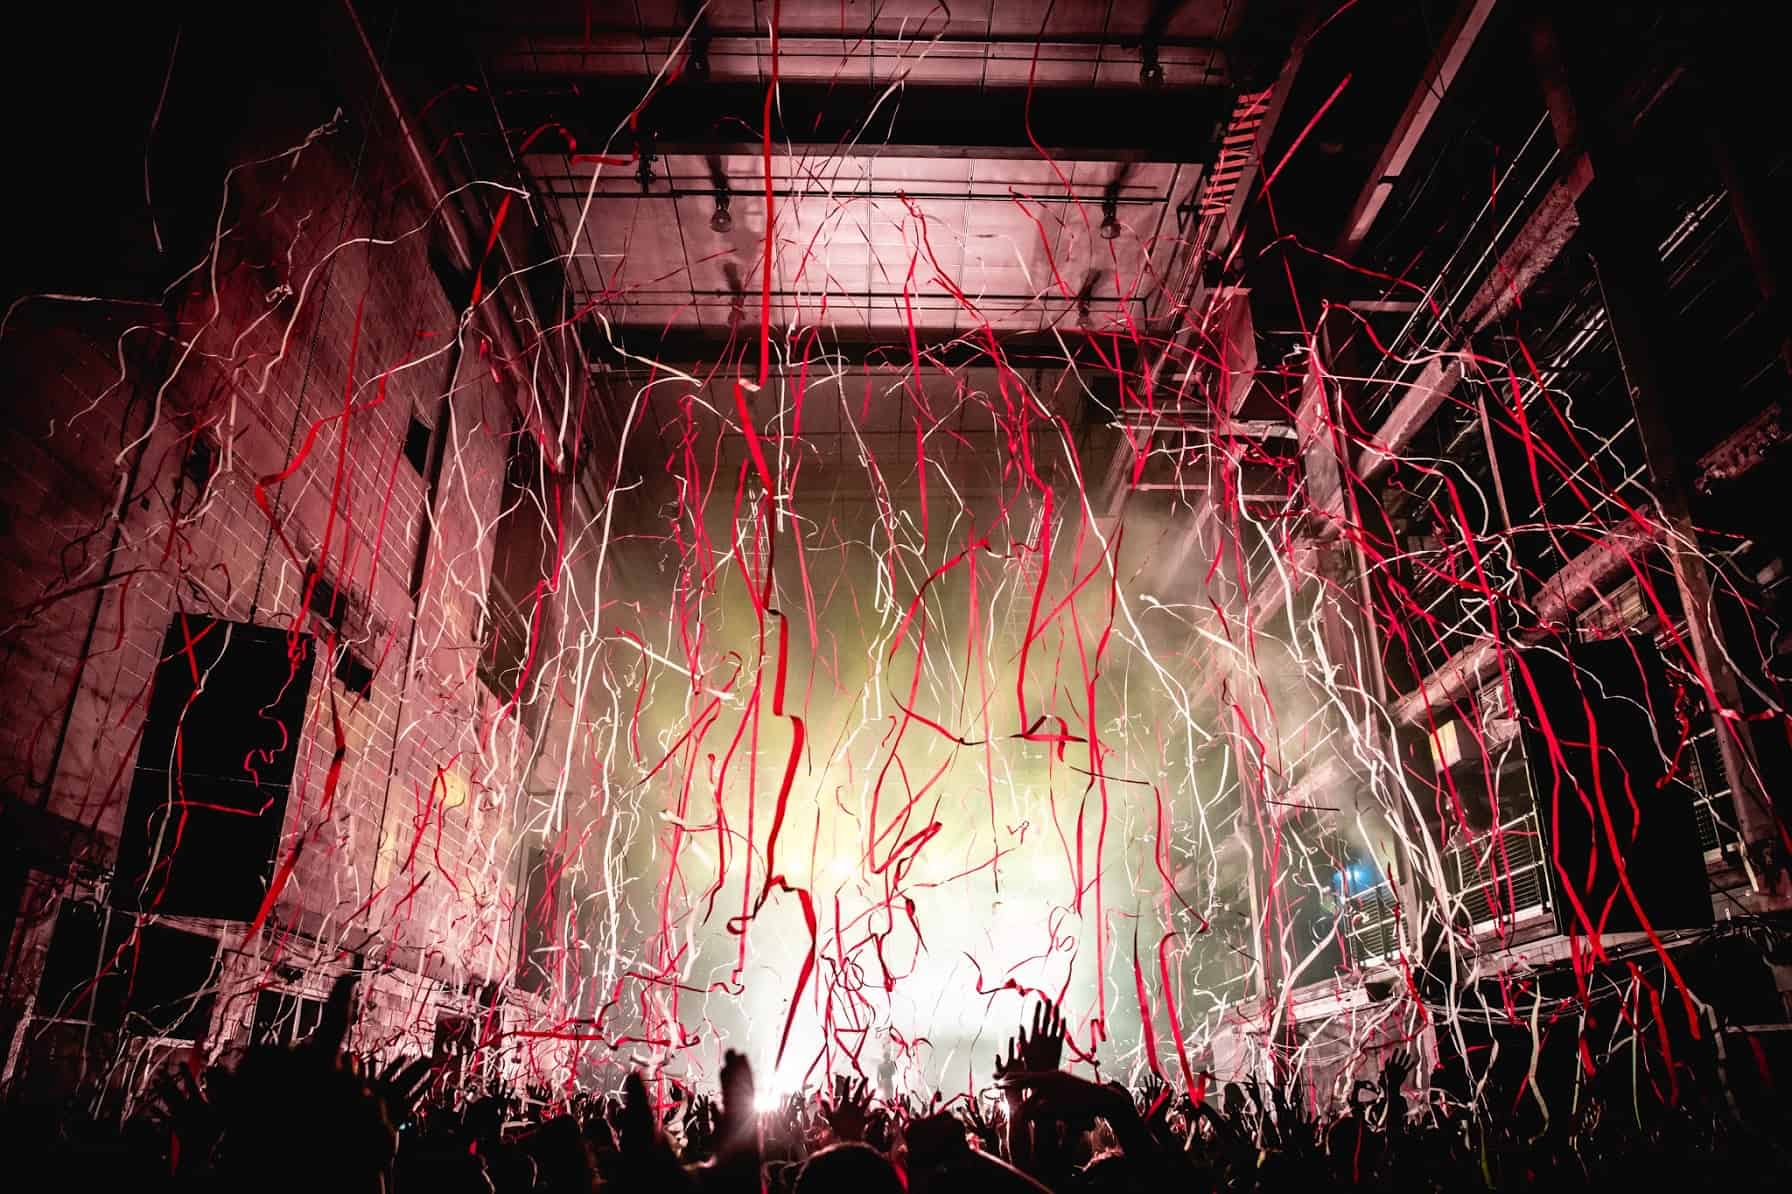 Display of Special FX at the Printworks in London with streams of coloured paper dropping from the ceiling